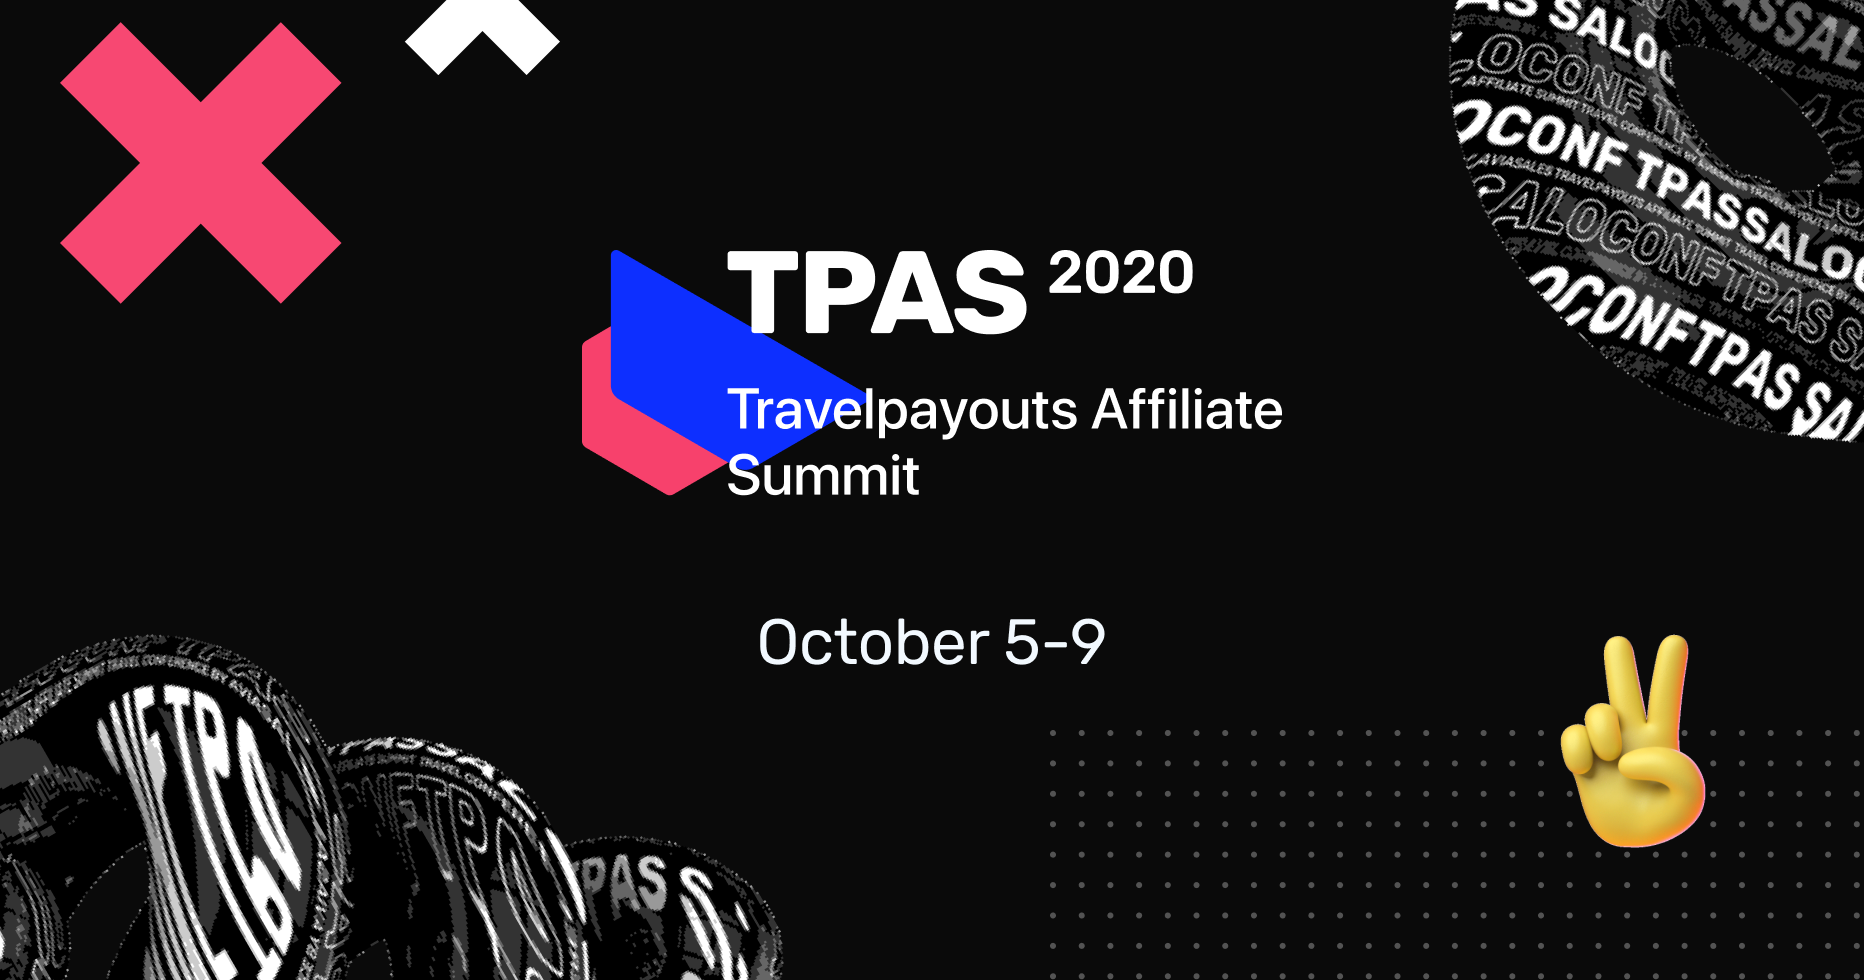 Welcome to the first online Travelpayouts Affiliate Summit